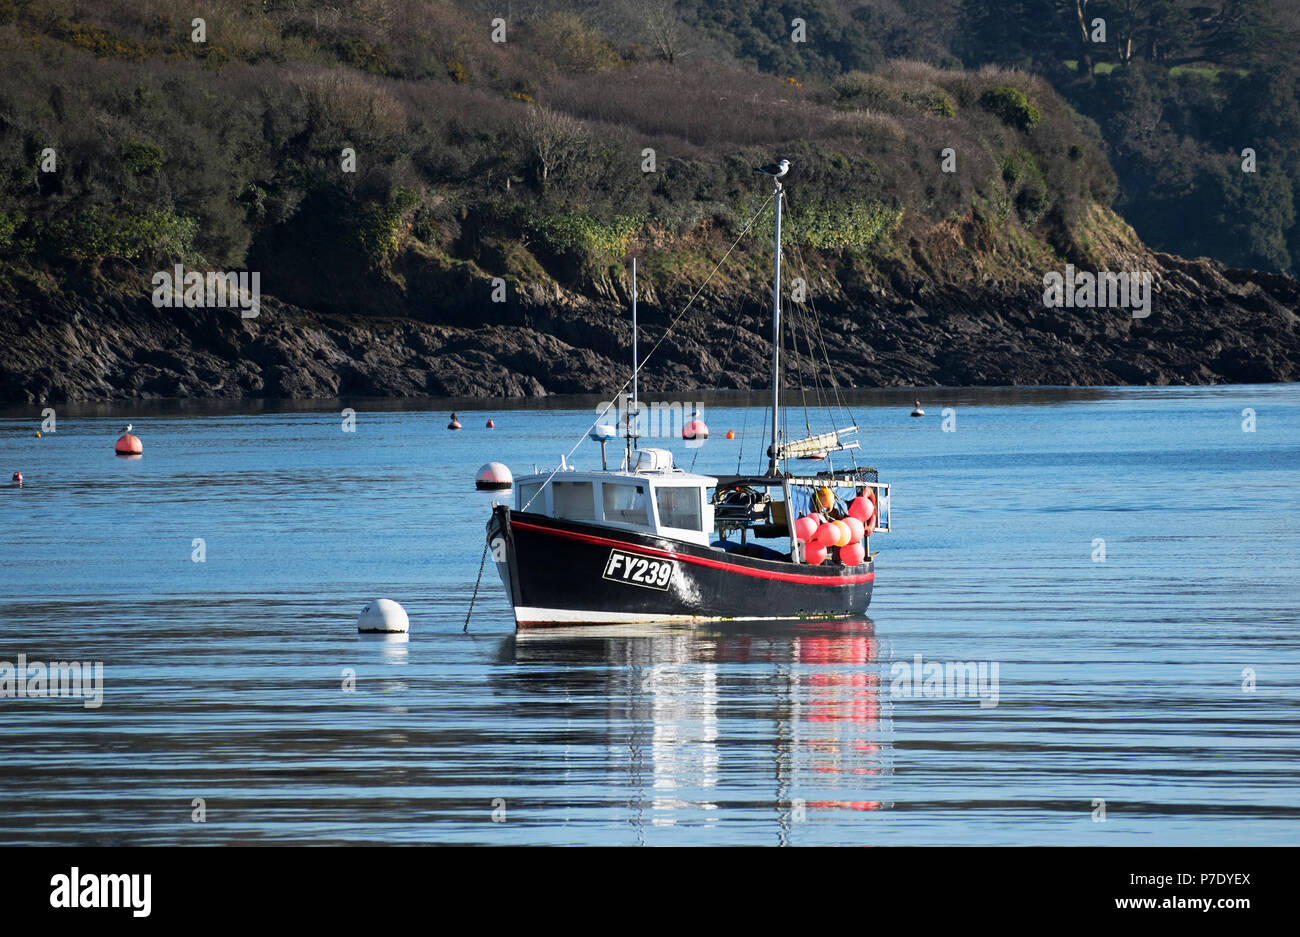 fishing boat on the helford river in cornwall, england, britain, uk. - Stock Image